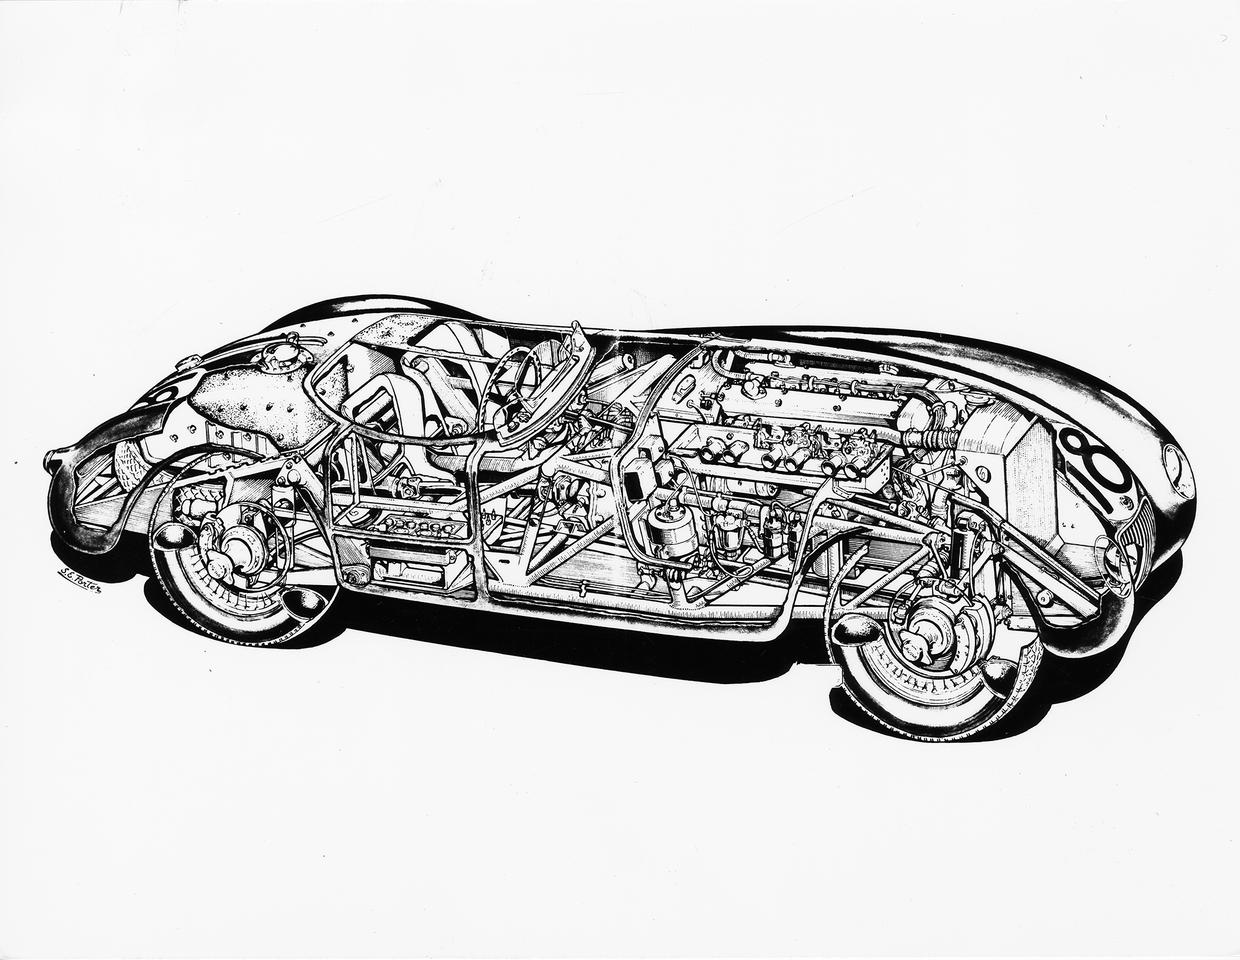 A peek under the skin of the original 1953 C-type